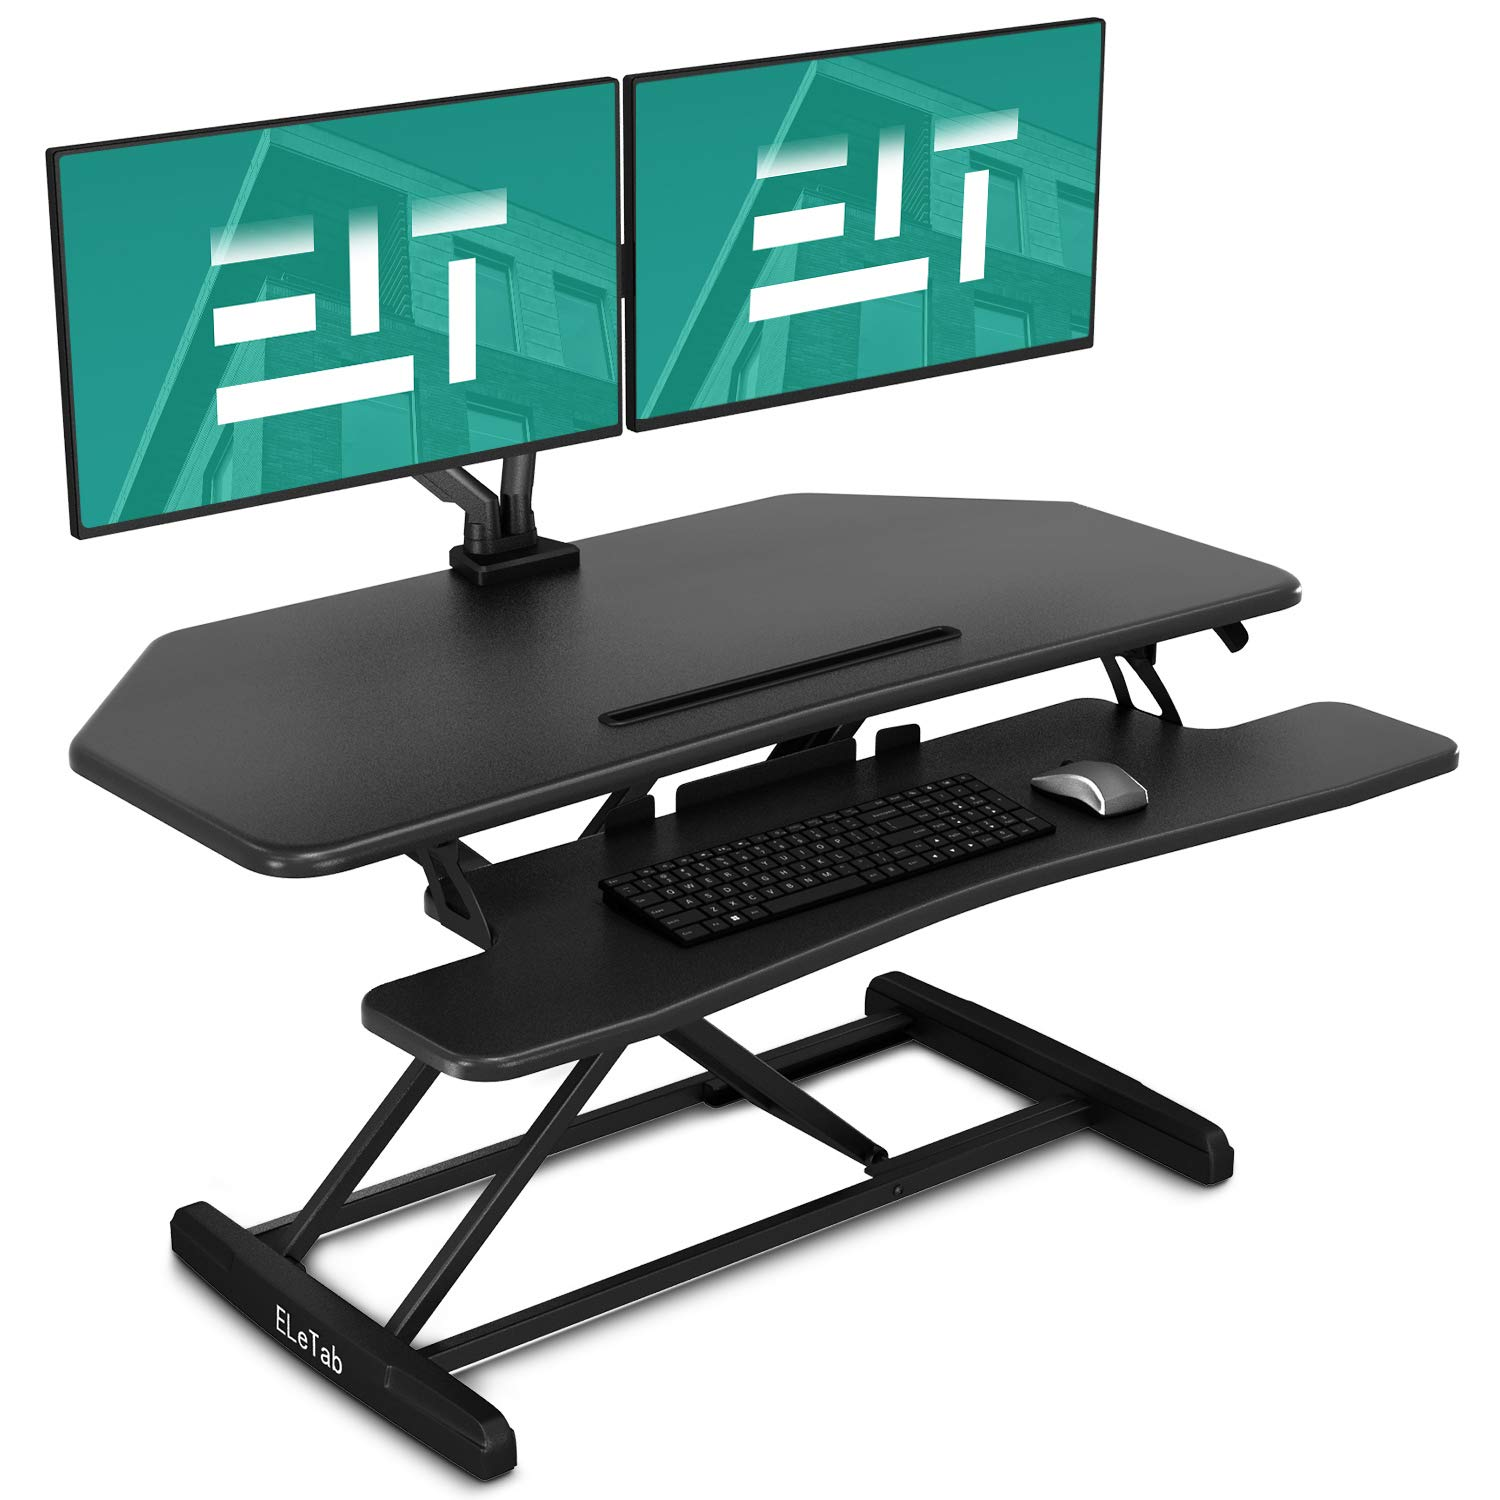 EleTab Standing Desk Converter 37 inches Black Stand up Gas Spring Workstation Quick Sit to Stand Tabletop Dual Monitor Riser